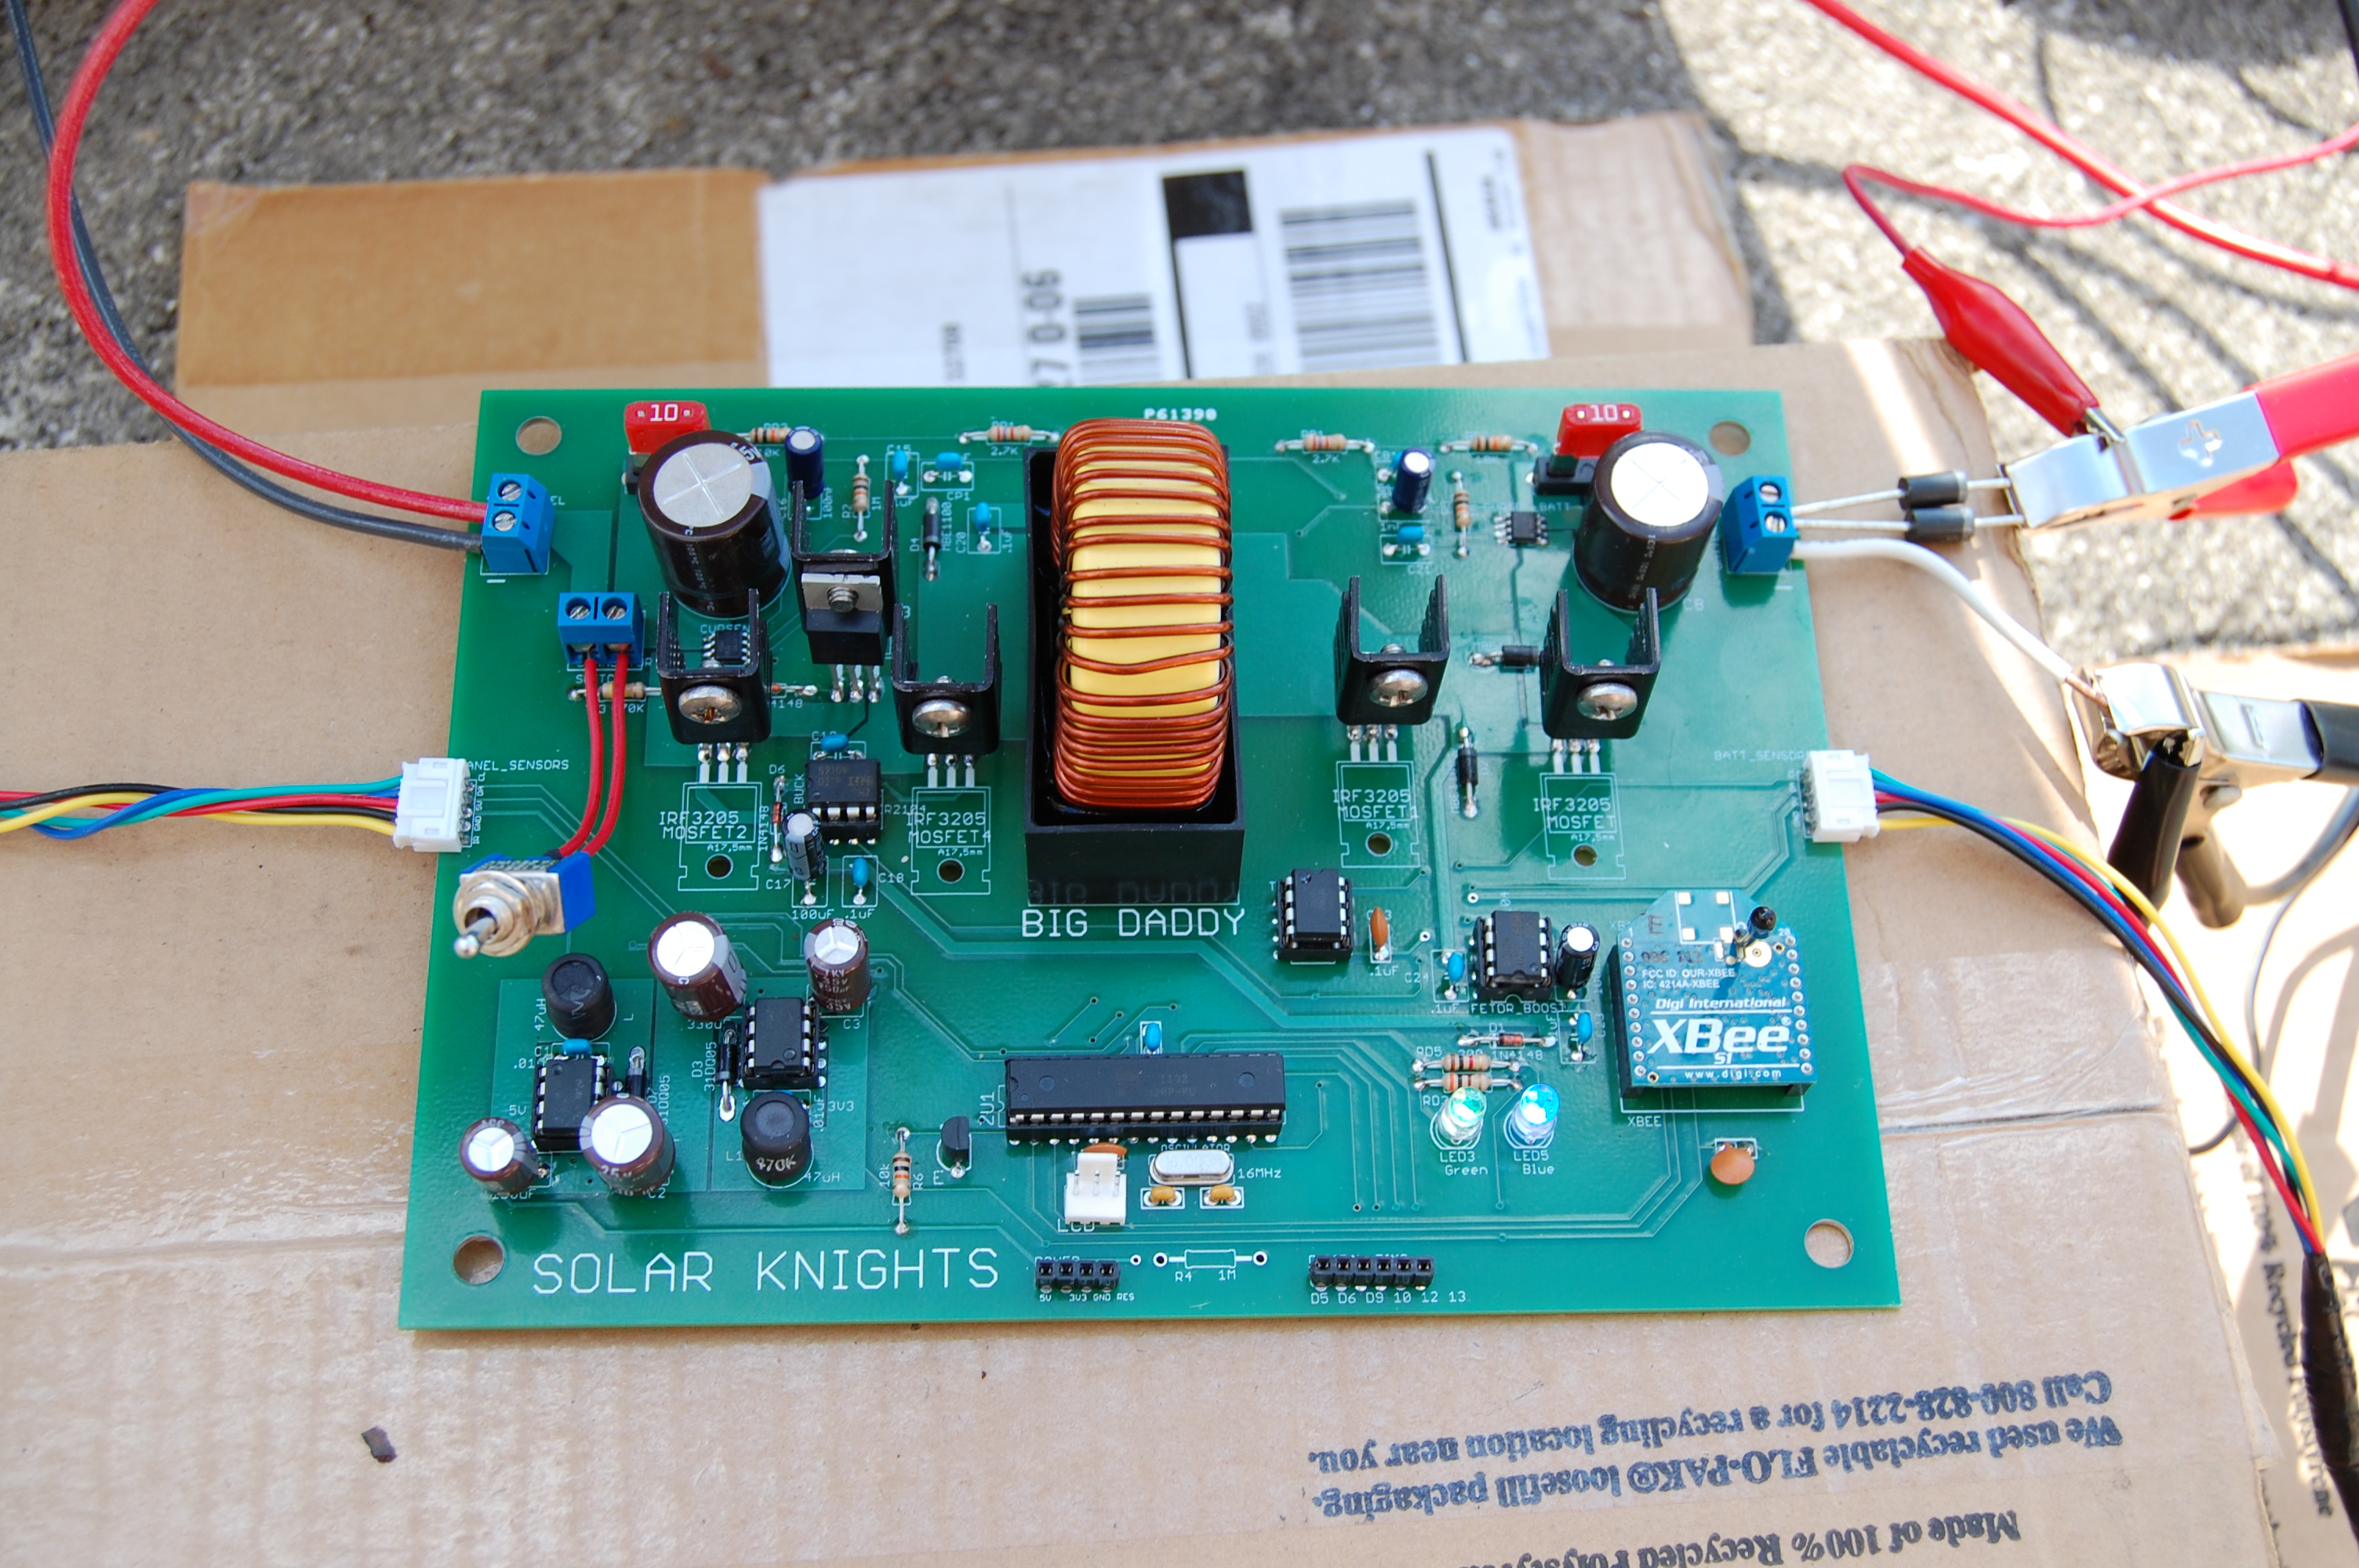 Pmc2 Solar Charge Controller Circuit Working With Microcontroller Block Diagram Pcb The Mppt Maximizes Efficiency By Controlling Output Voltage Since A Batterys Stays At Near Constant